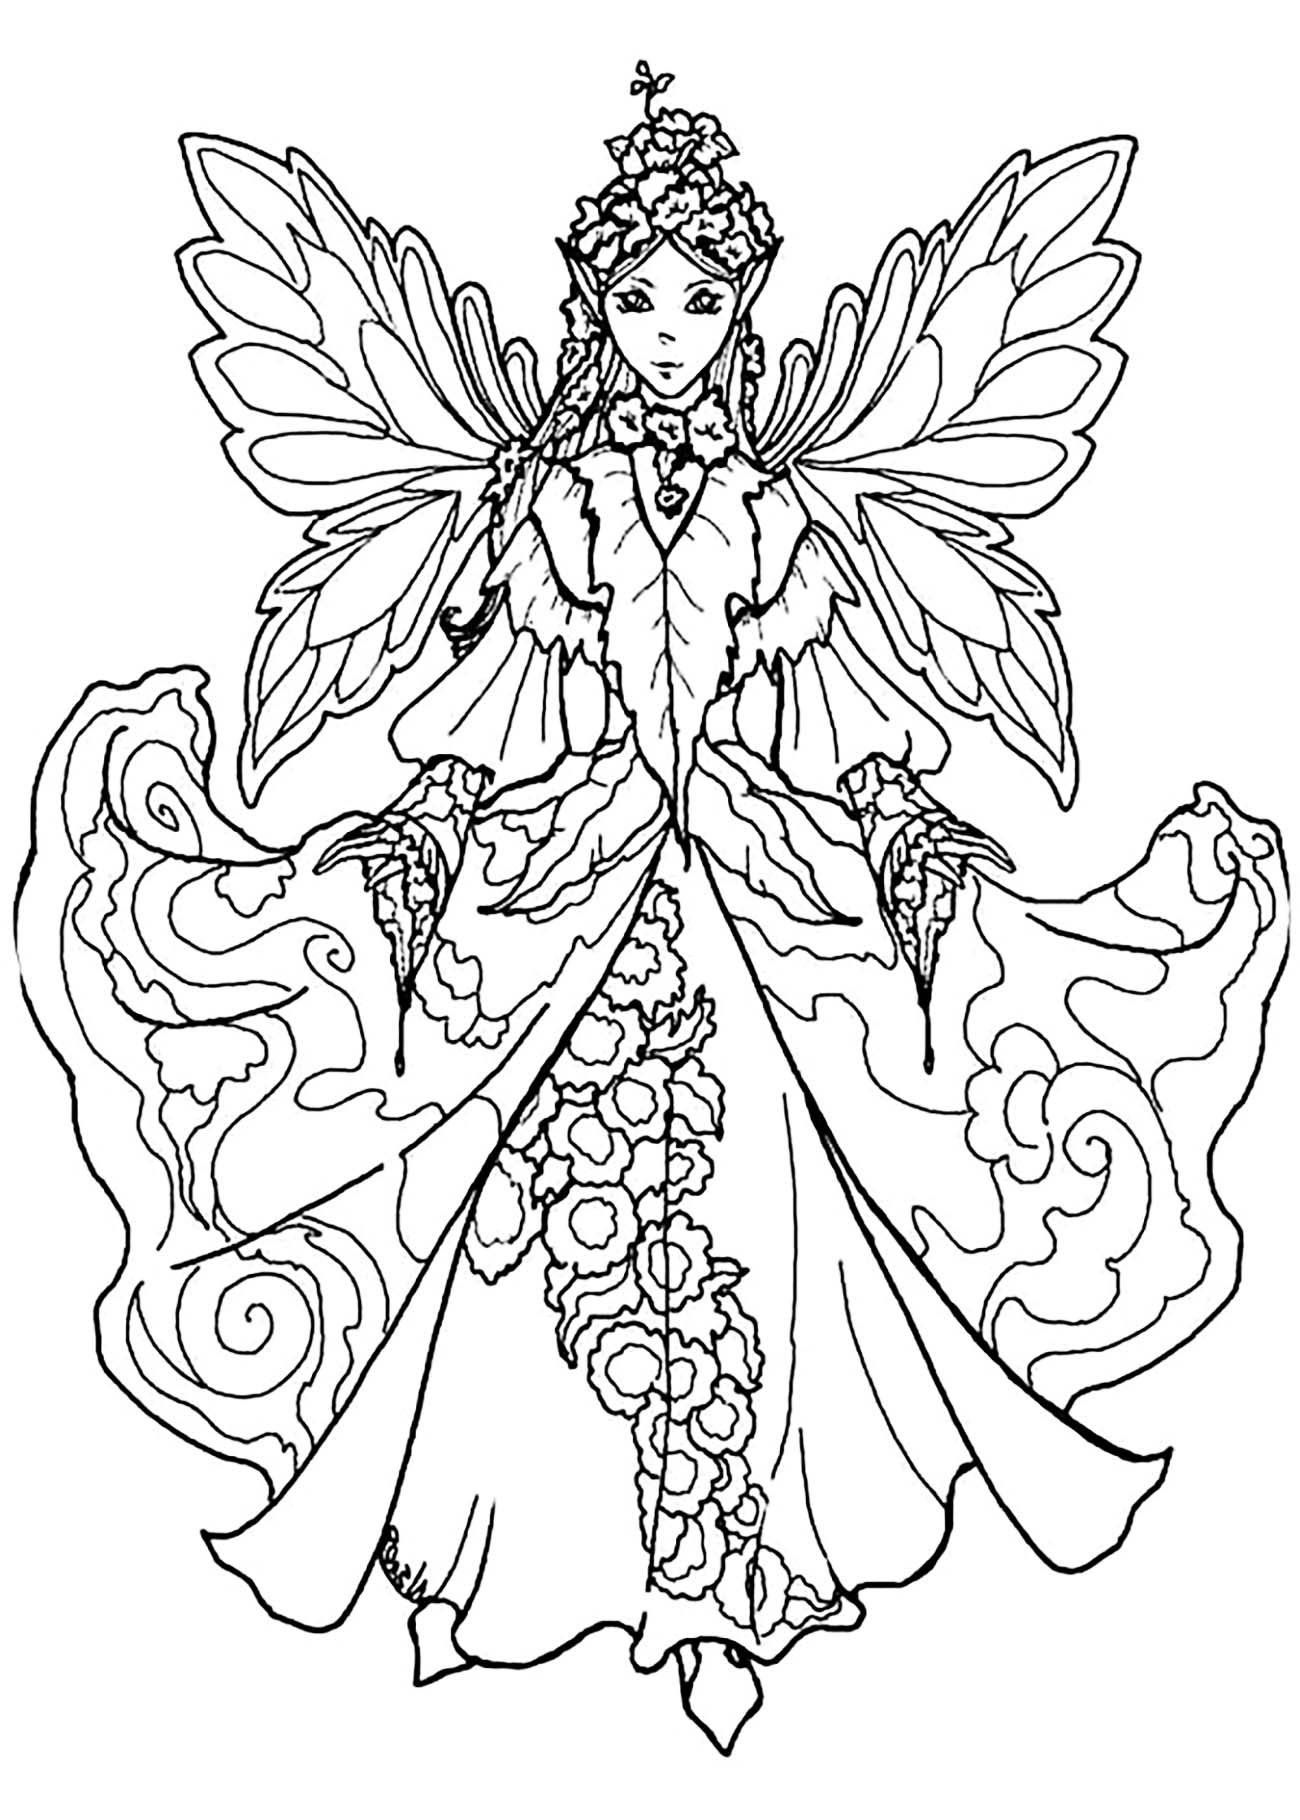 Fee avec superbe robe mythes et l gendes coloriages - Fee coloriage ...